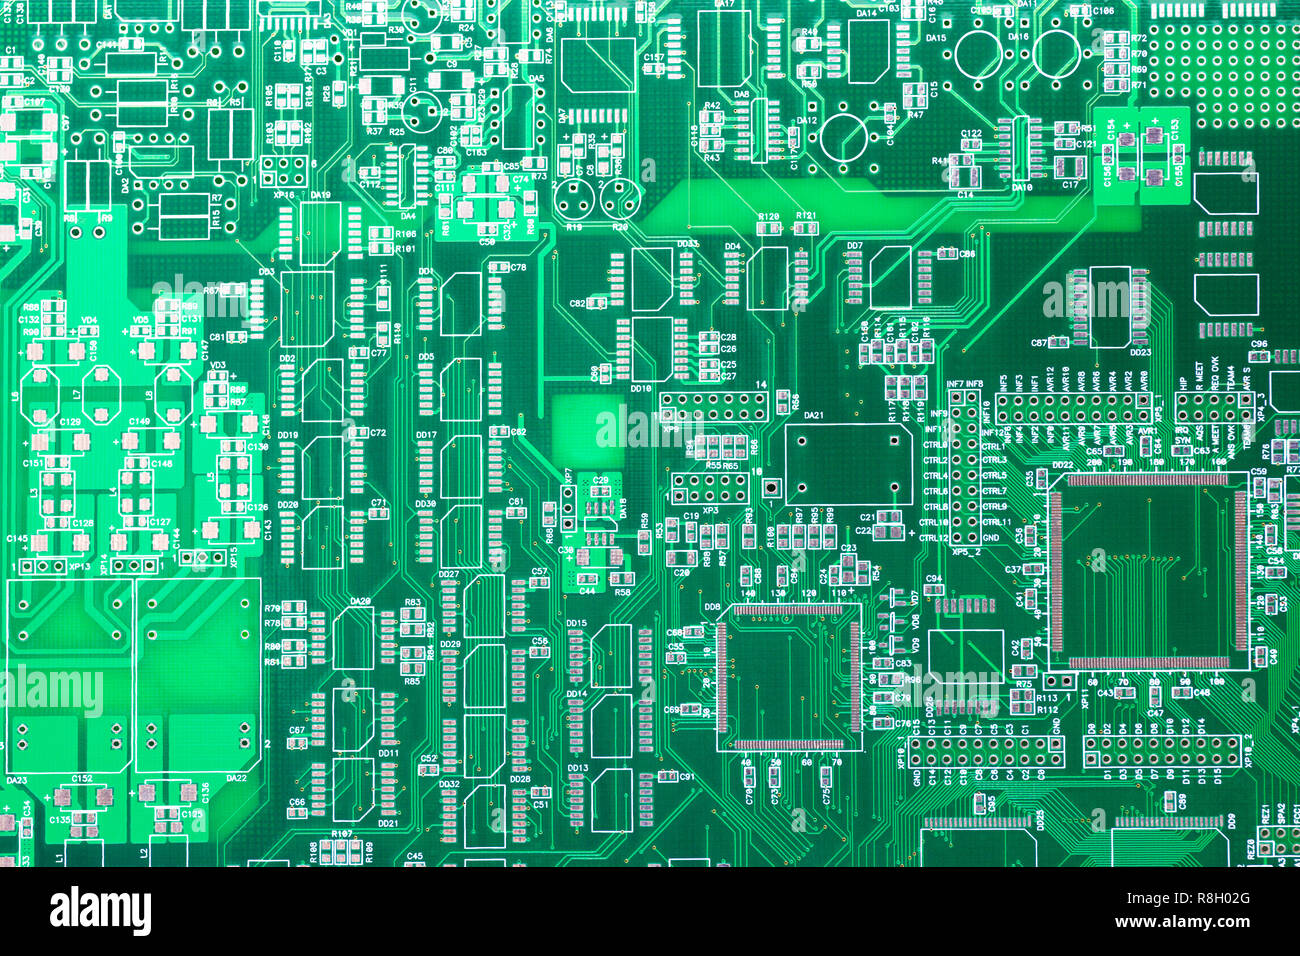 Circuit board. Electronic computer hardware technology. Motherboard digital chip. Tech science background. Integrated communication processor. Informa - Stock Image